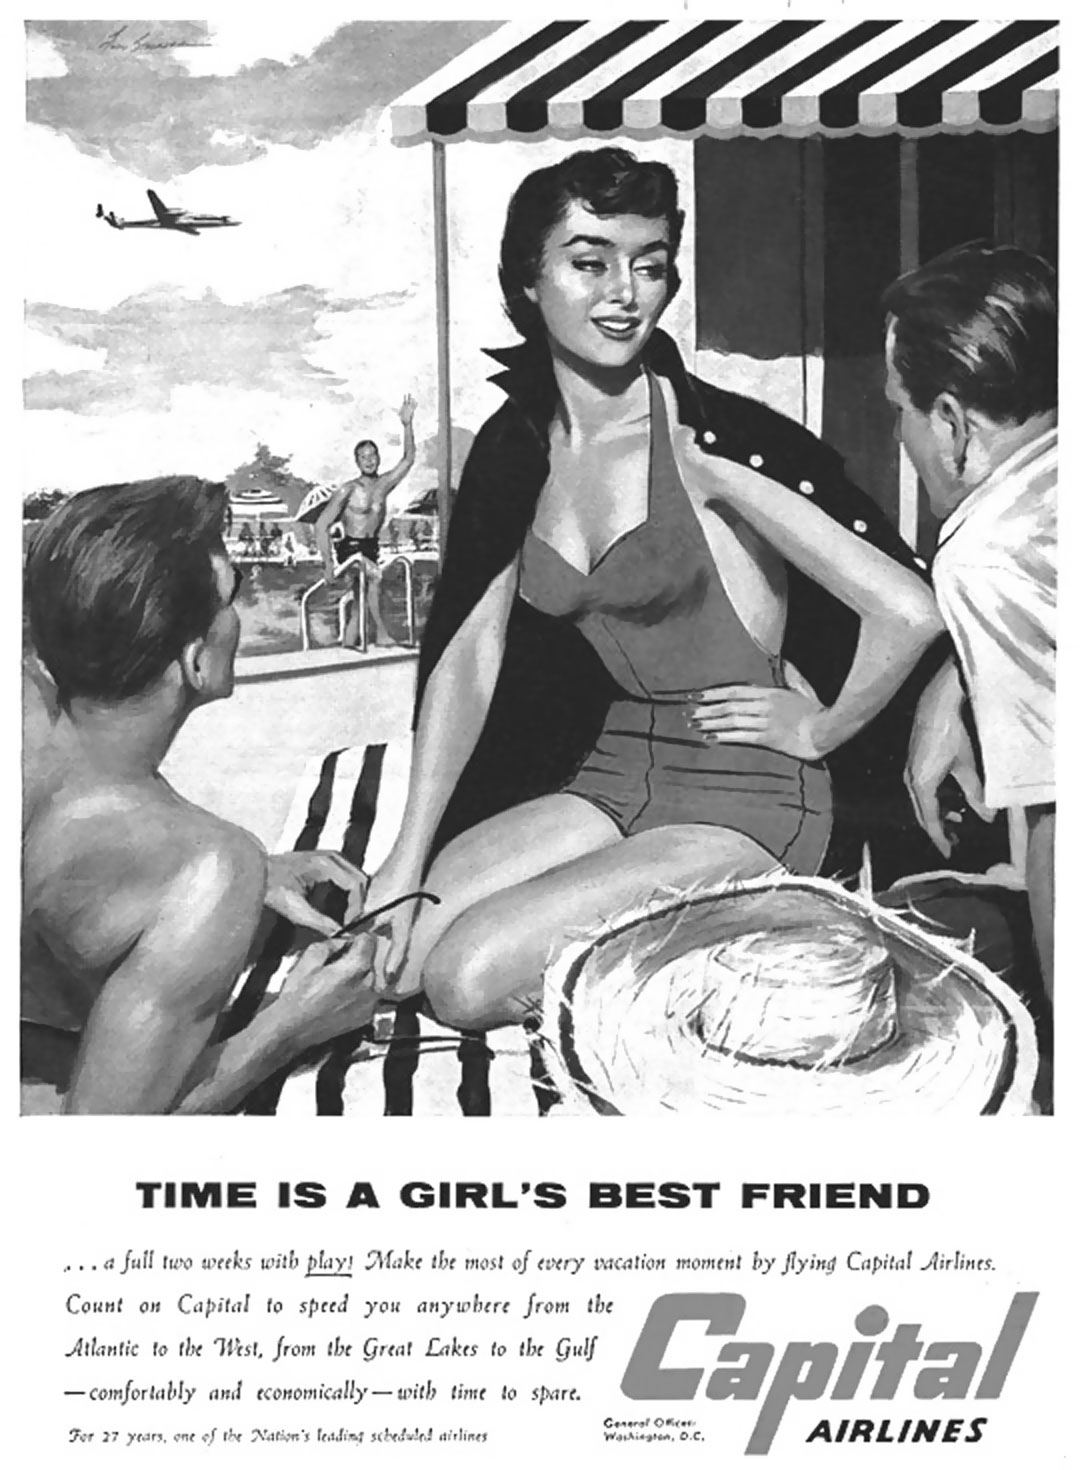 Capital Airlines - 1950's